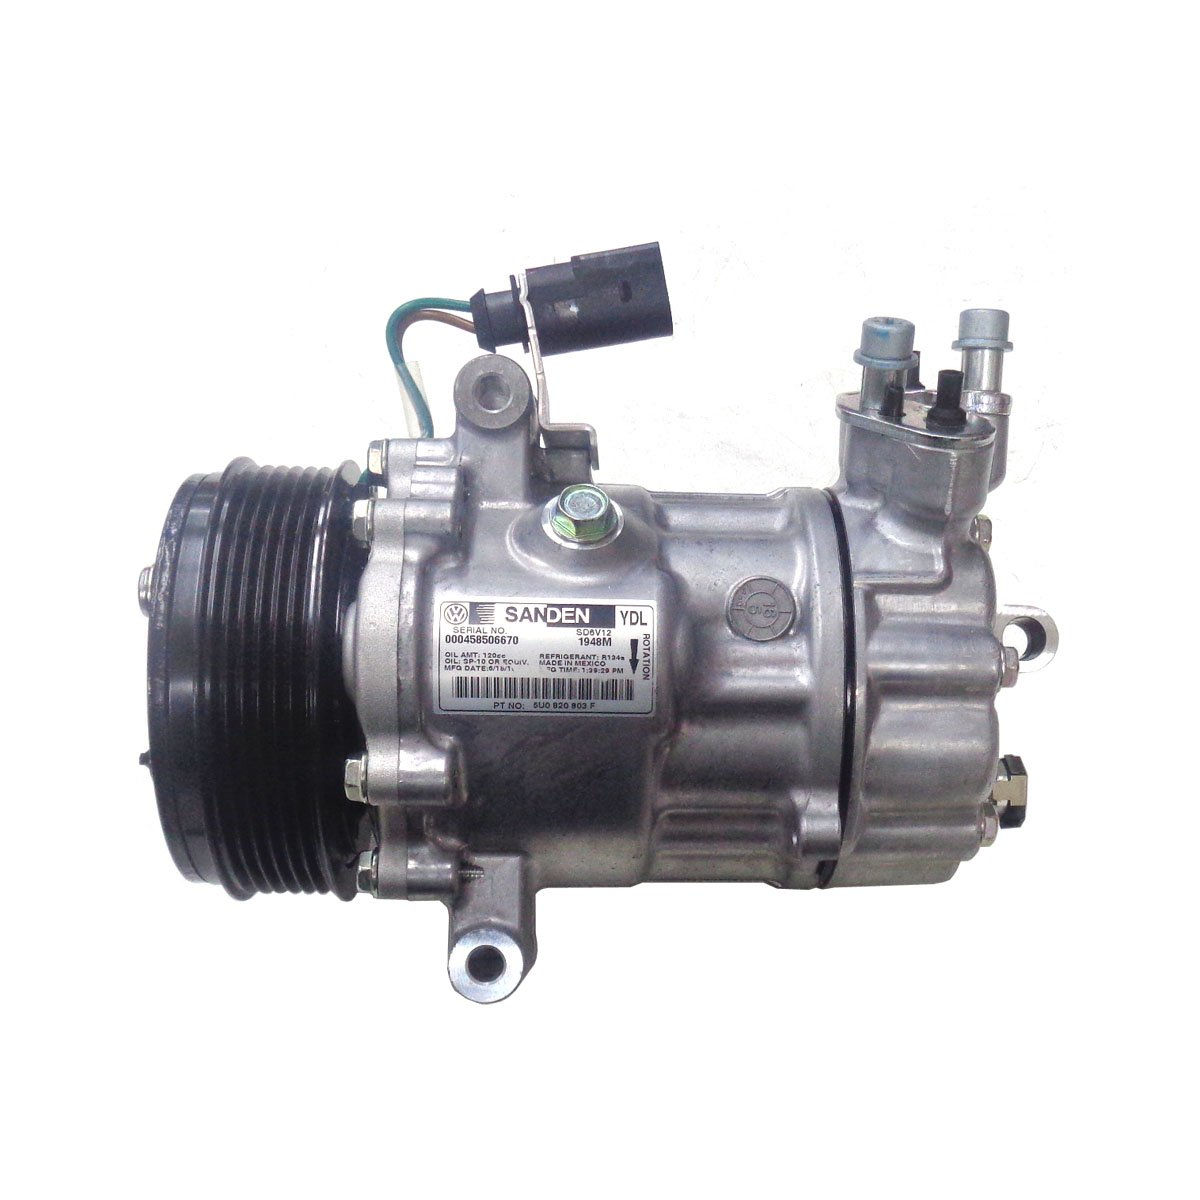 Compressor do Ar Condicionado Vw 1.6 - Ar Condicionado - Uni